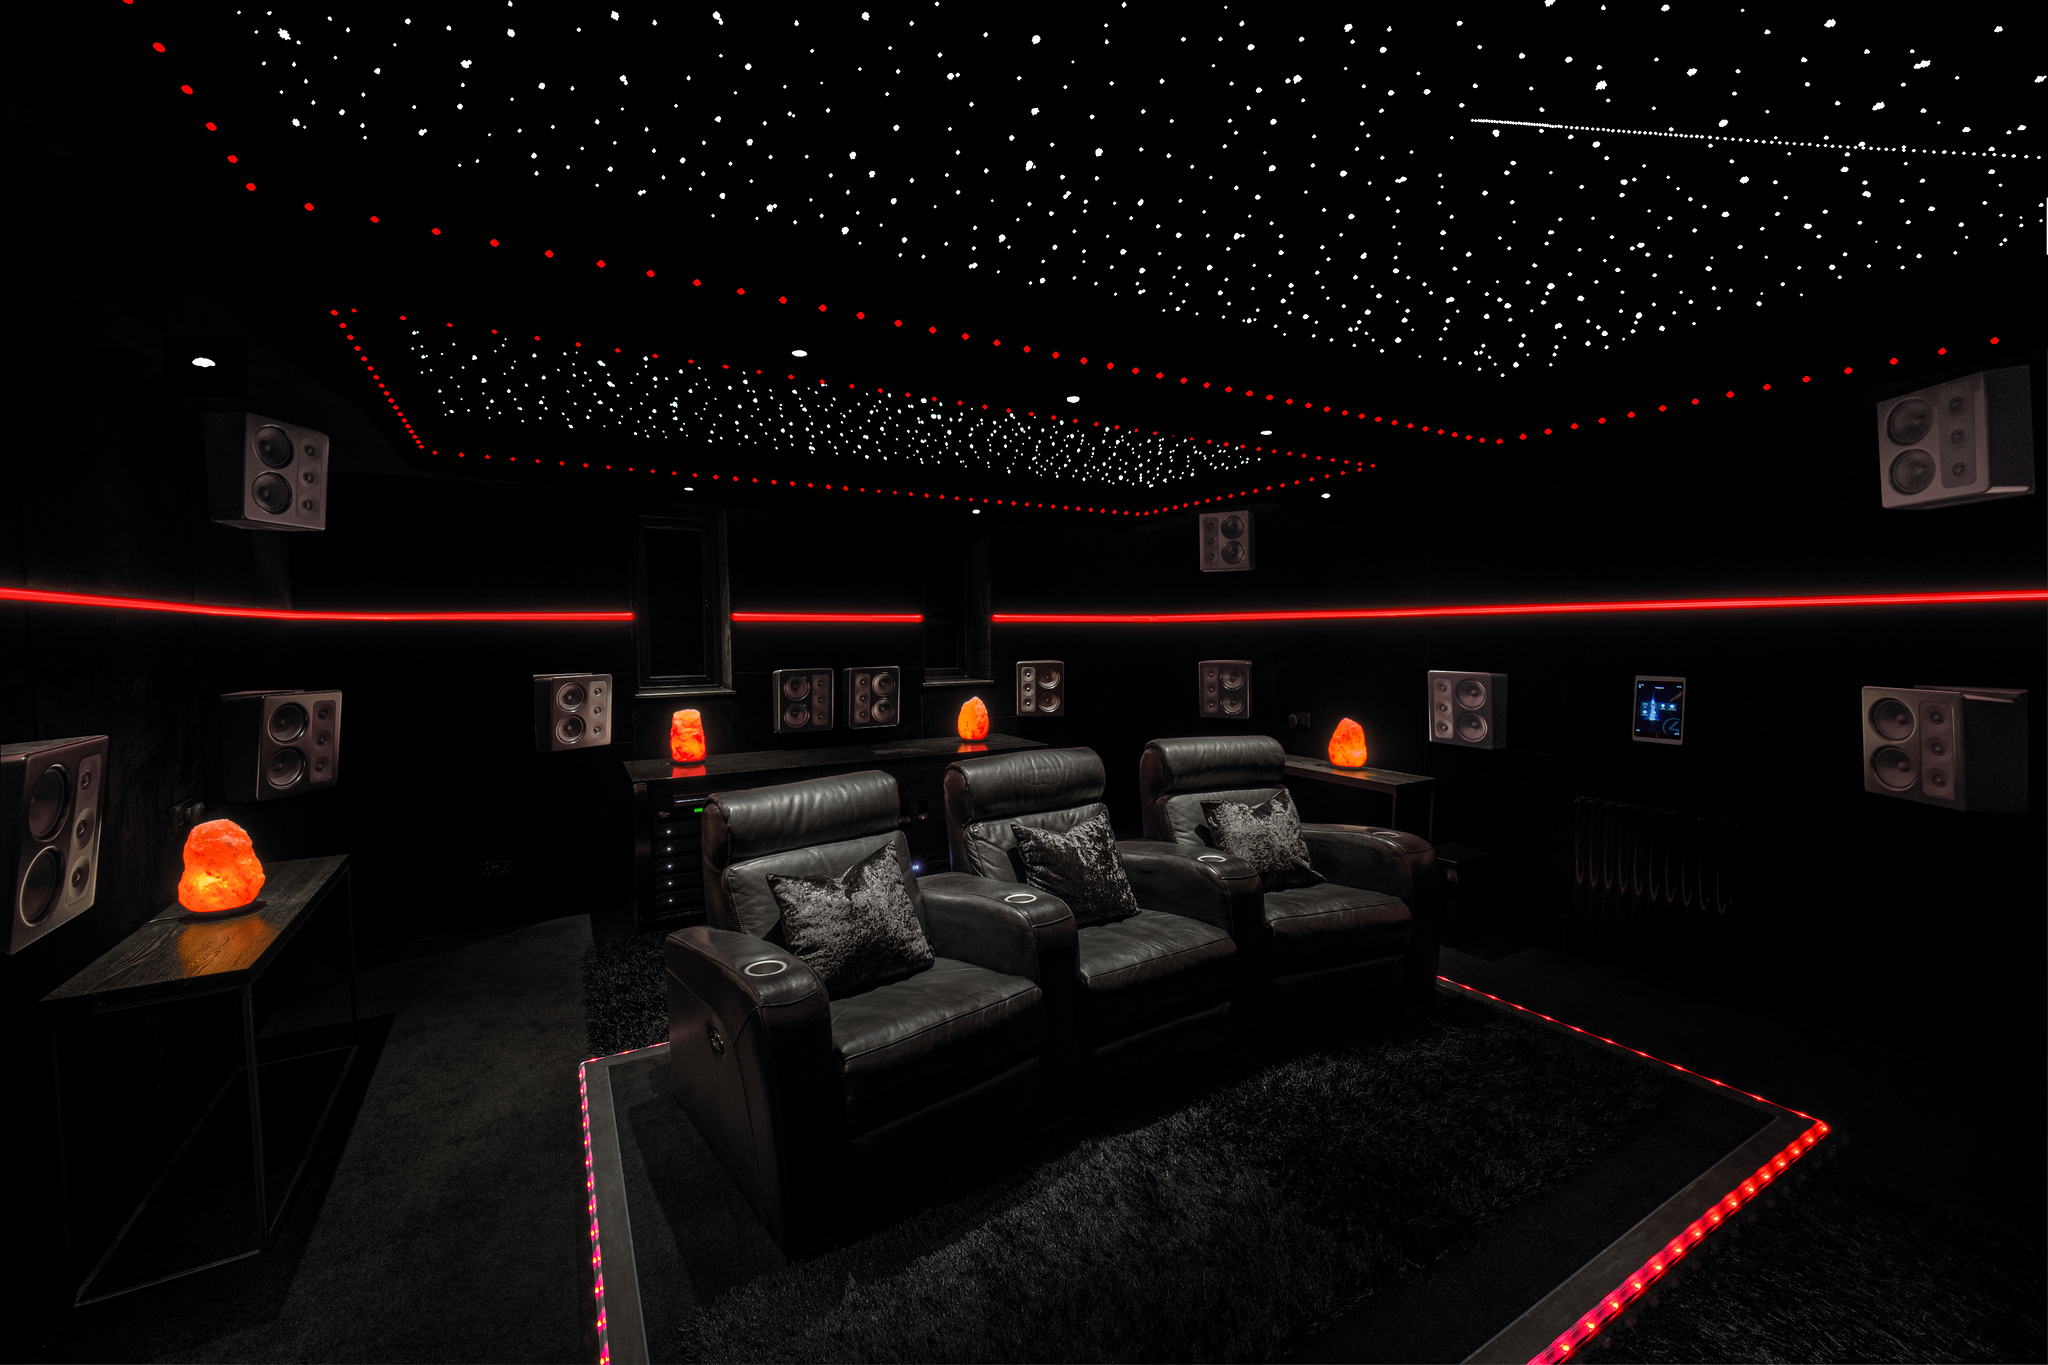 the-manor-lyngdorf-tv-movie-music-home-theater-2-4K-X4.jpg